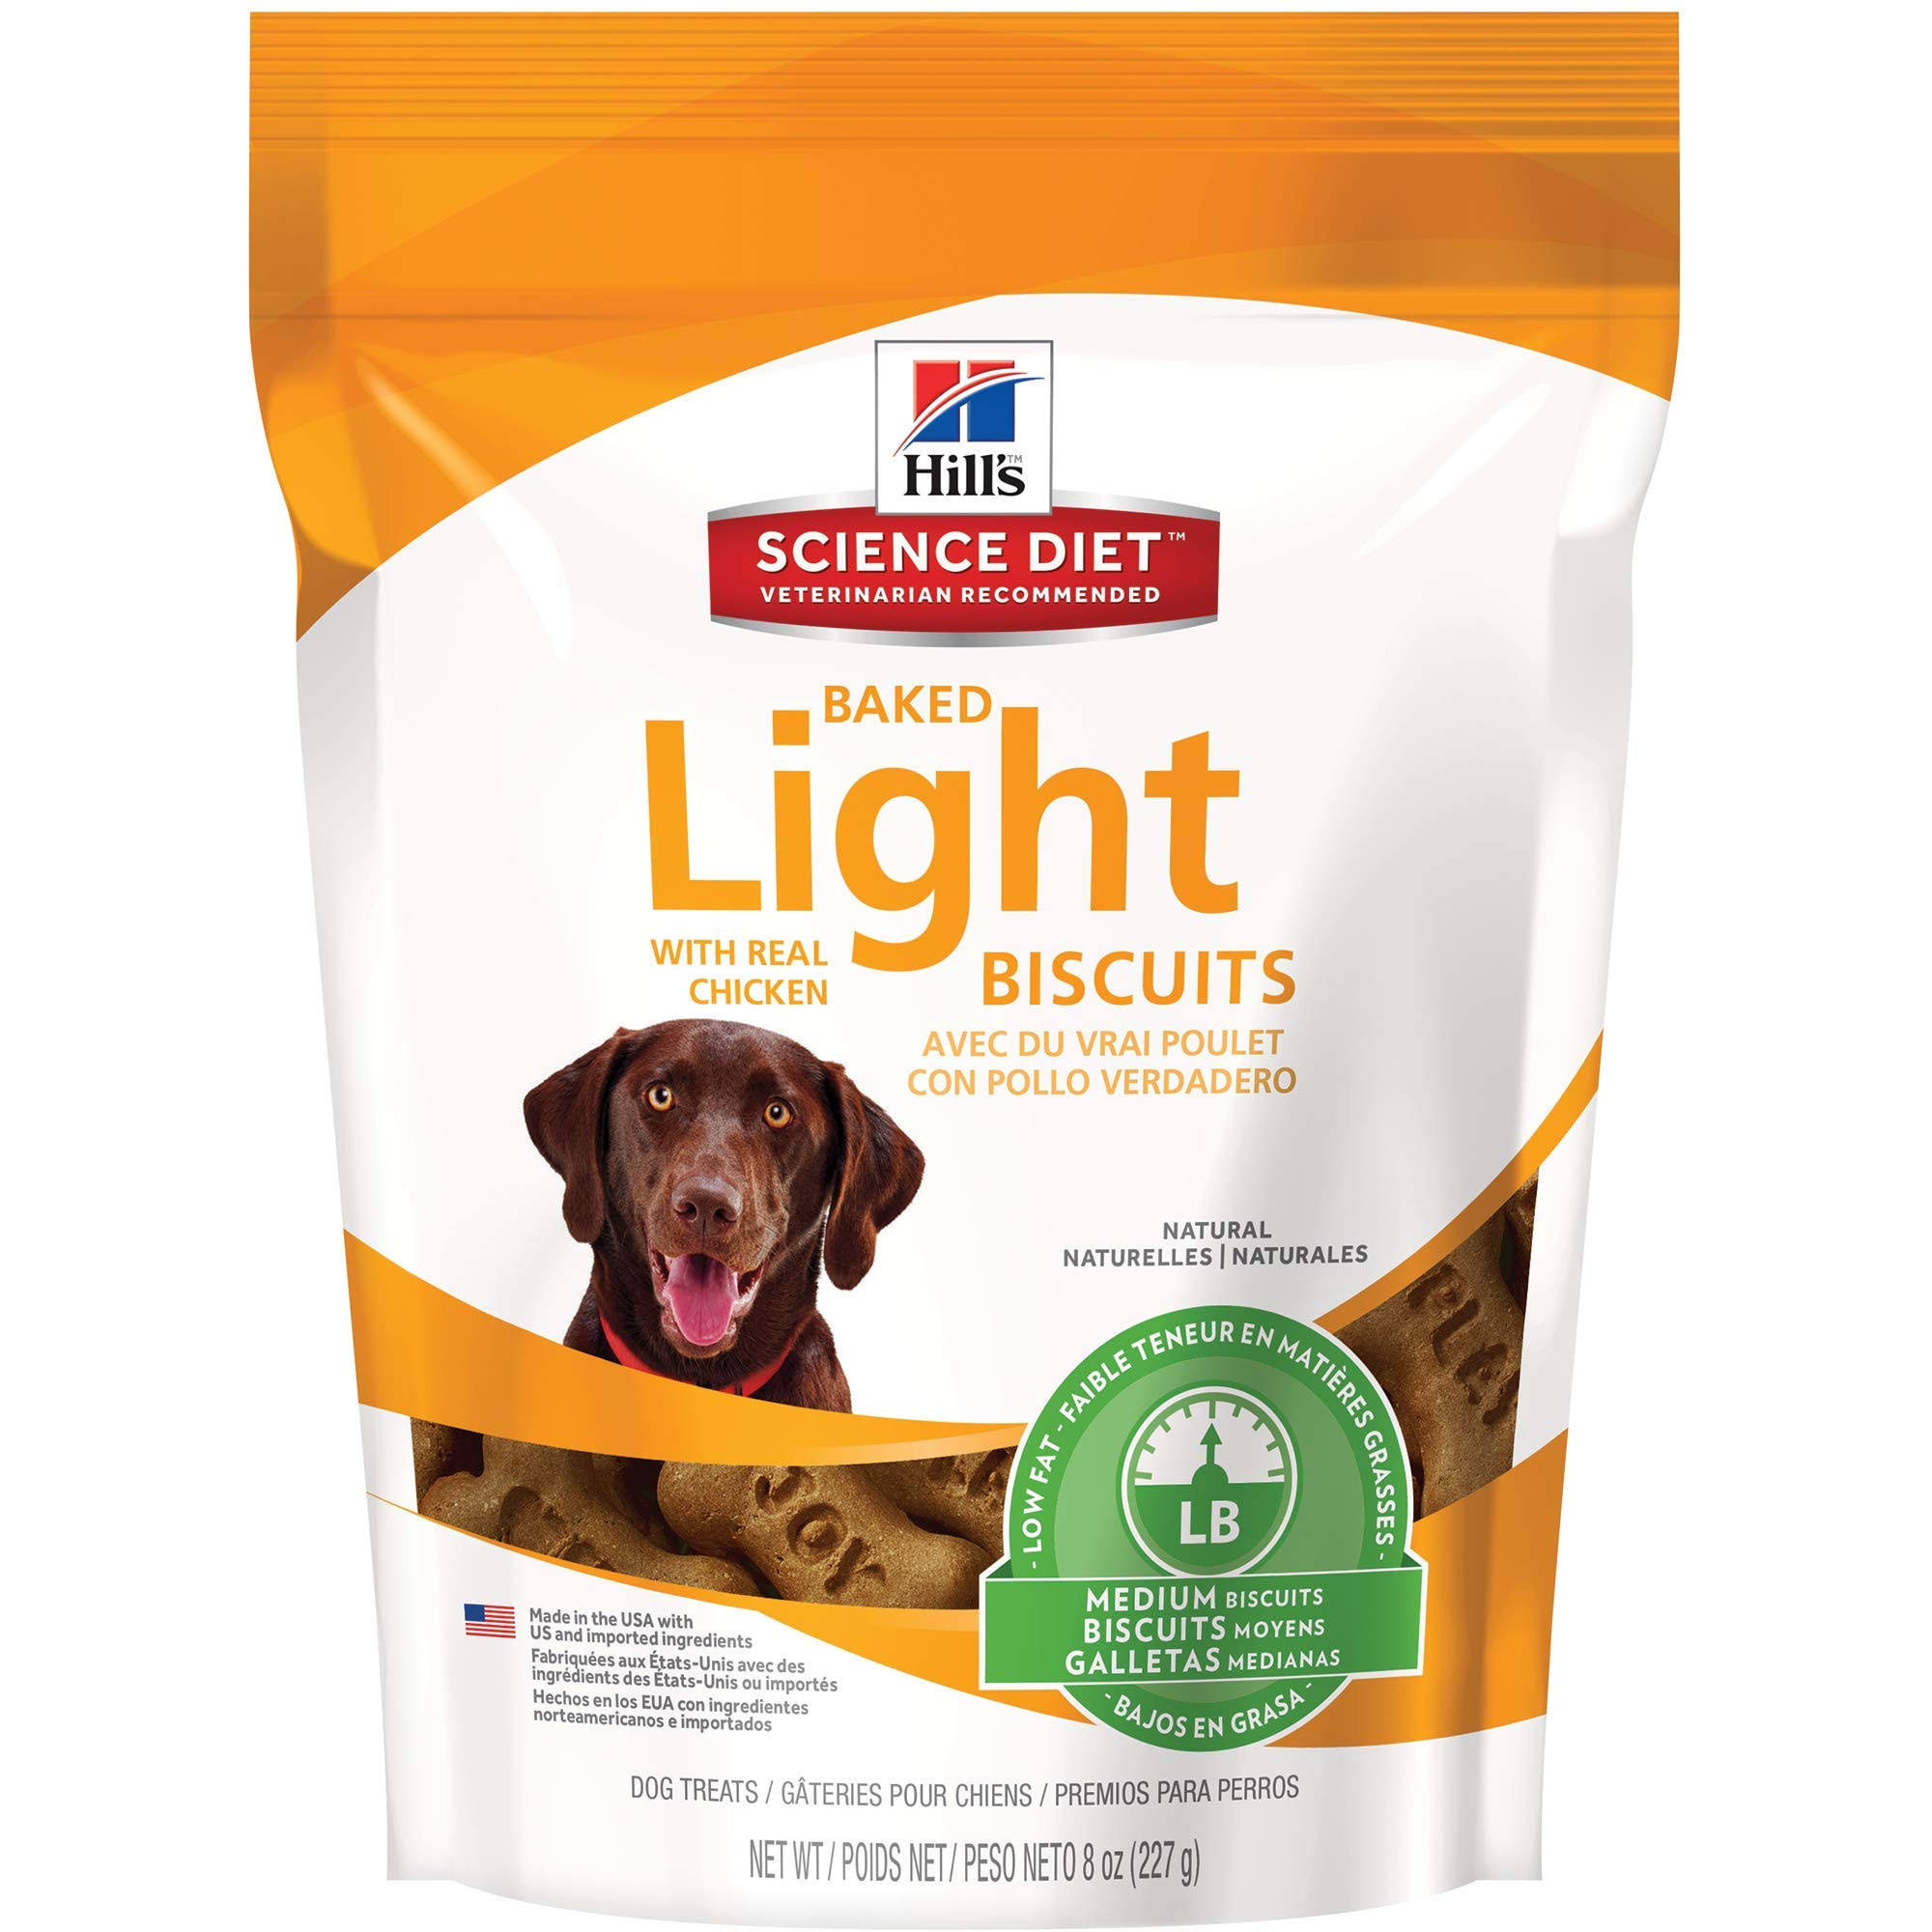 Hill's Science Diet Medium Baked Light Biscuits with Real Chicken Dog Treats